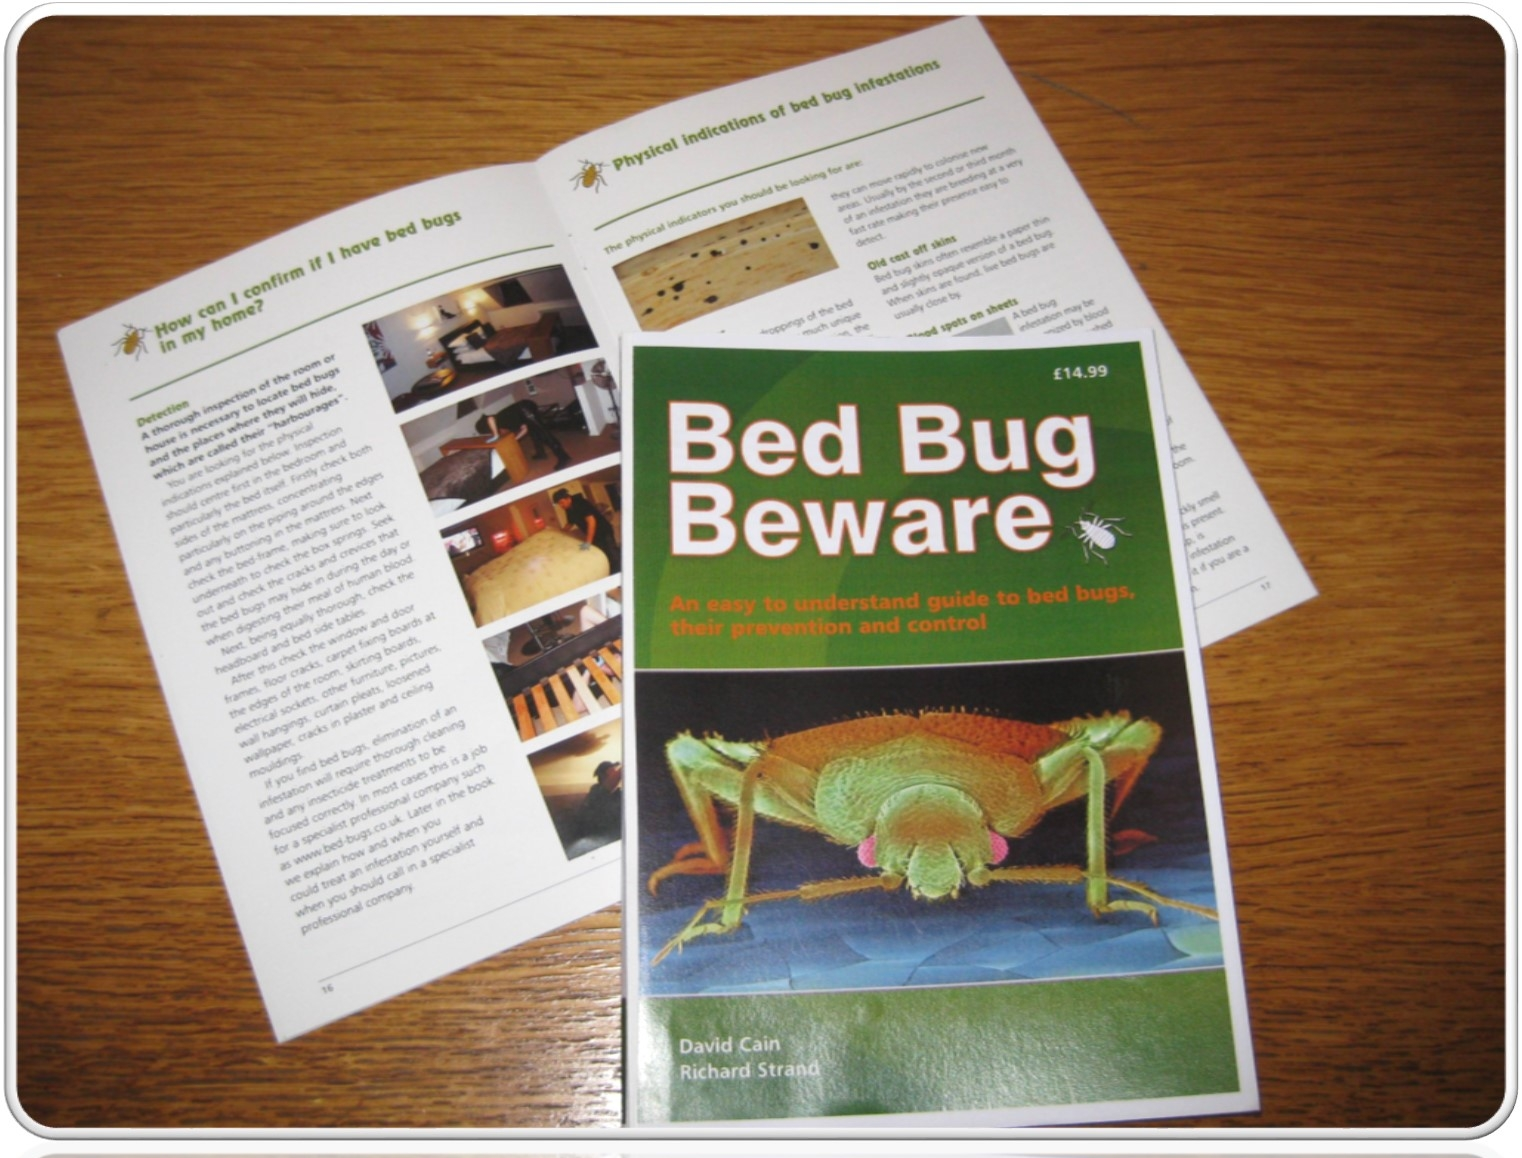 bed bug beware by david cain